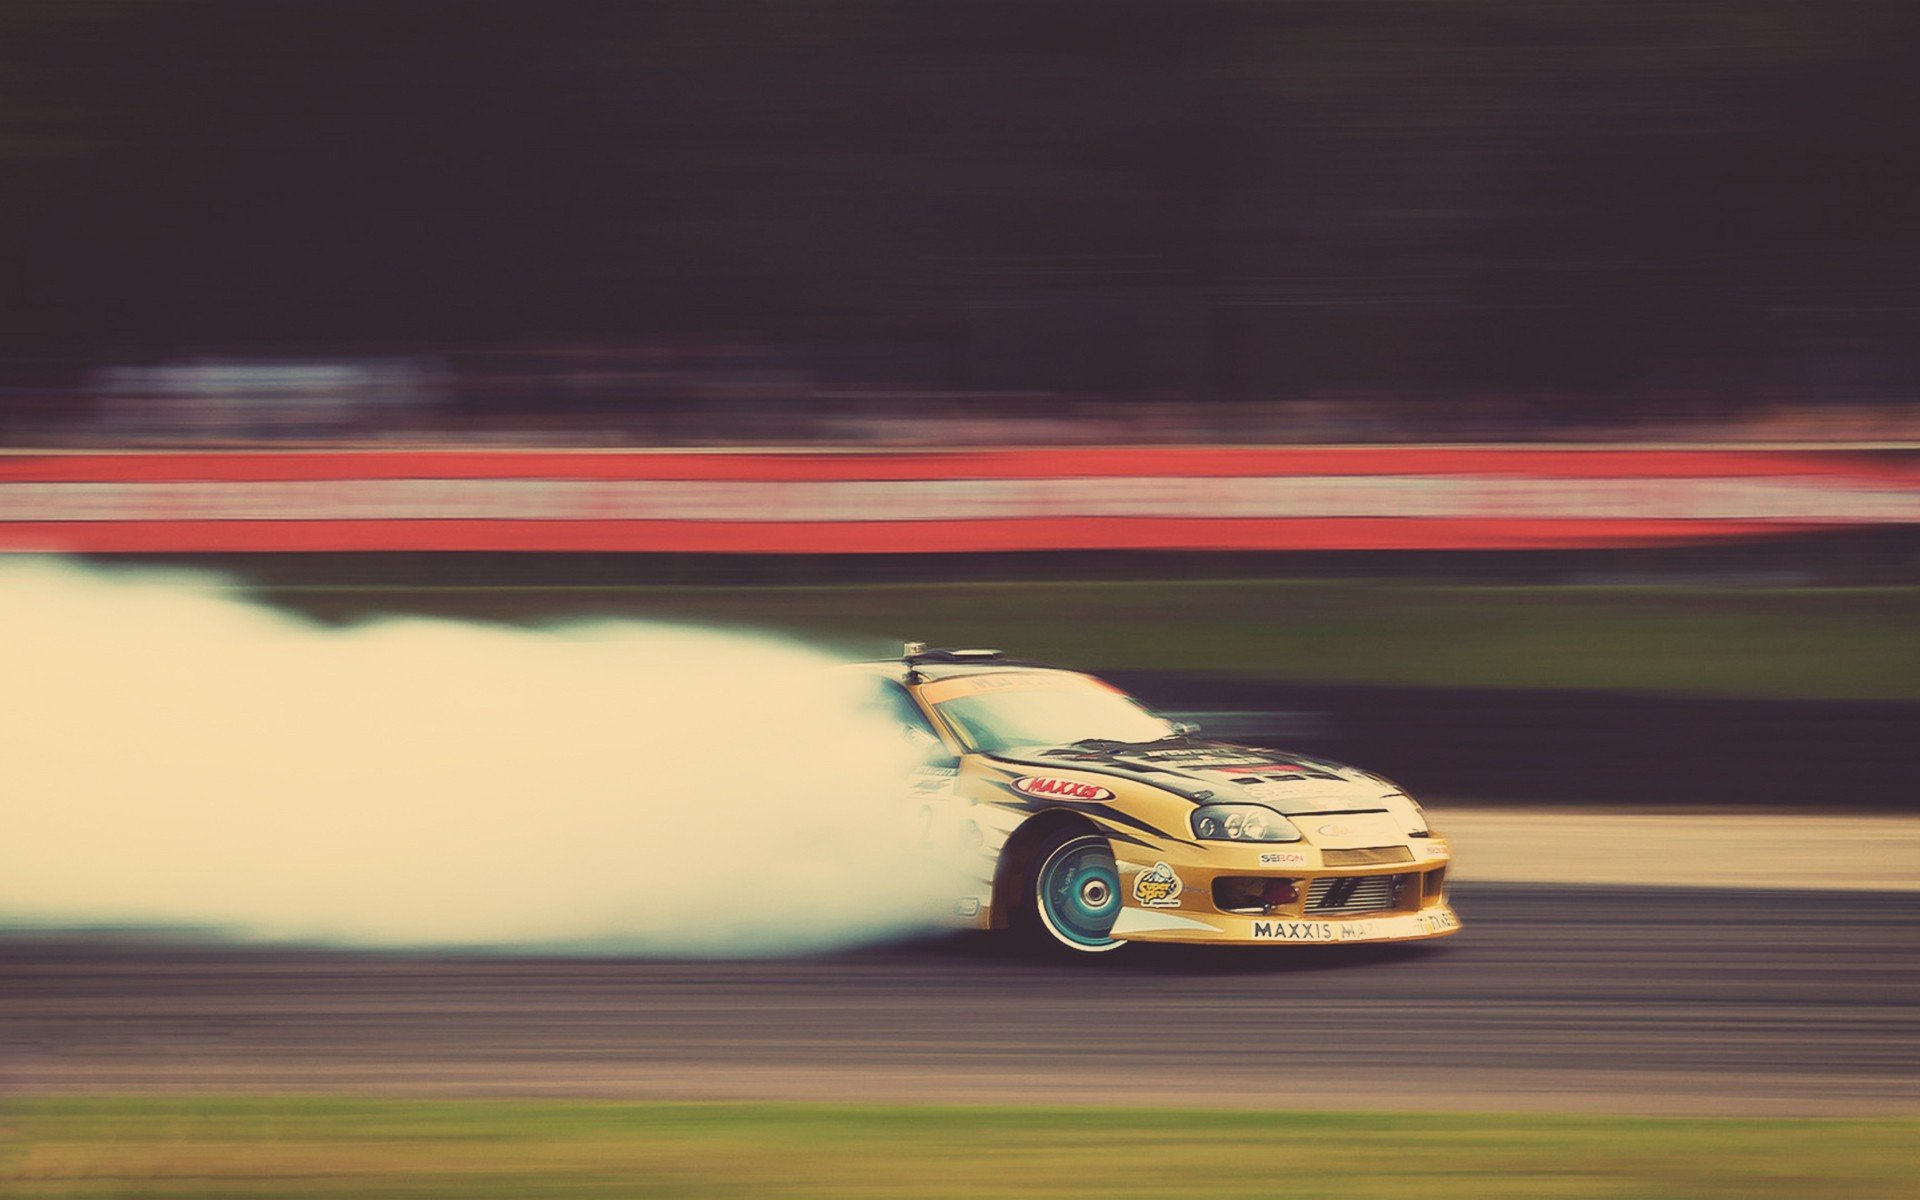 Cars smoke tuning Toyota Supra drifting wallpaper 1920x1200 234020 1920x1200